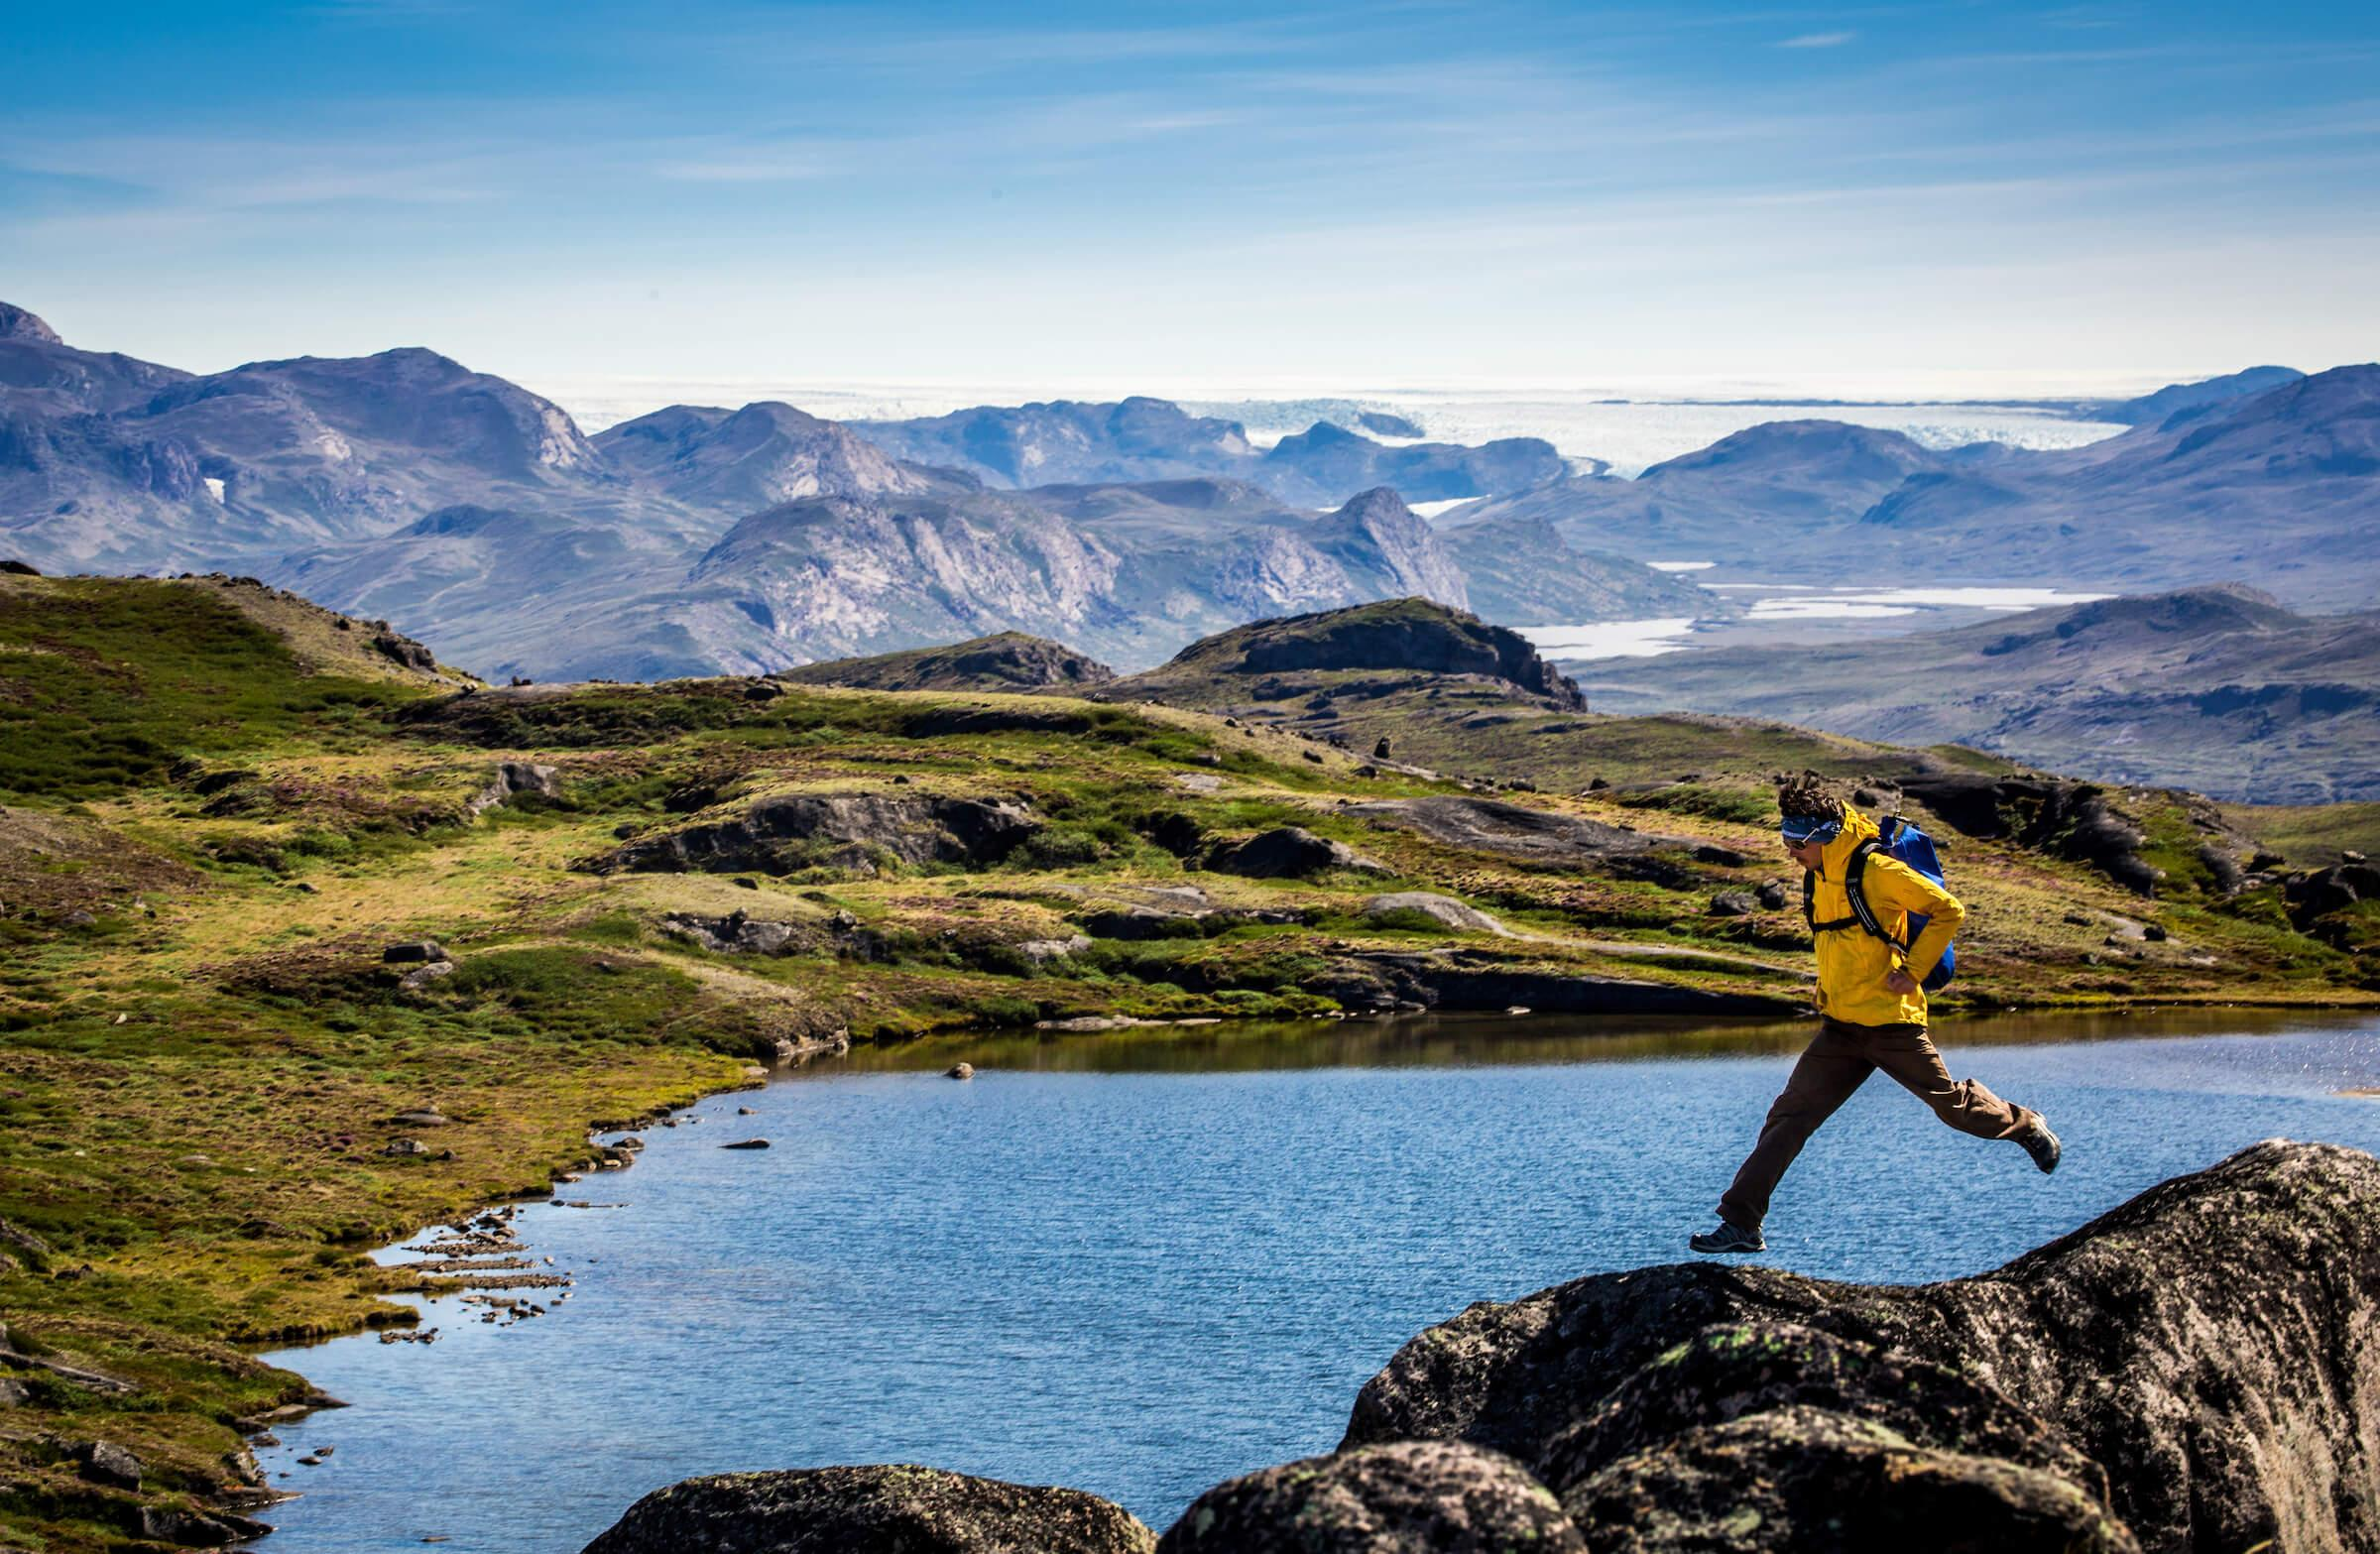 Enthusiastic hiker having fun near the Greenland Ice Sheet along the Arctic Circle. By Raven Eye Photography